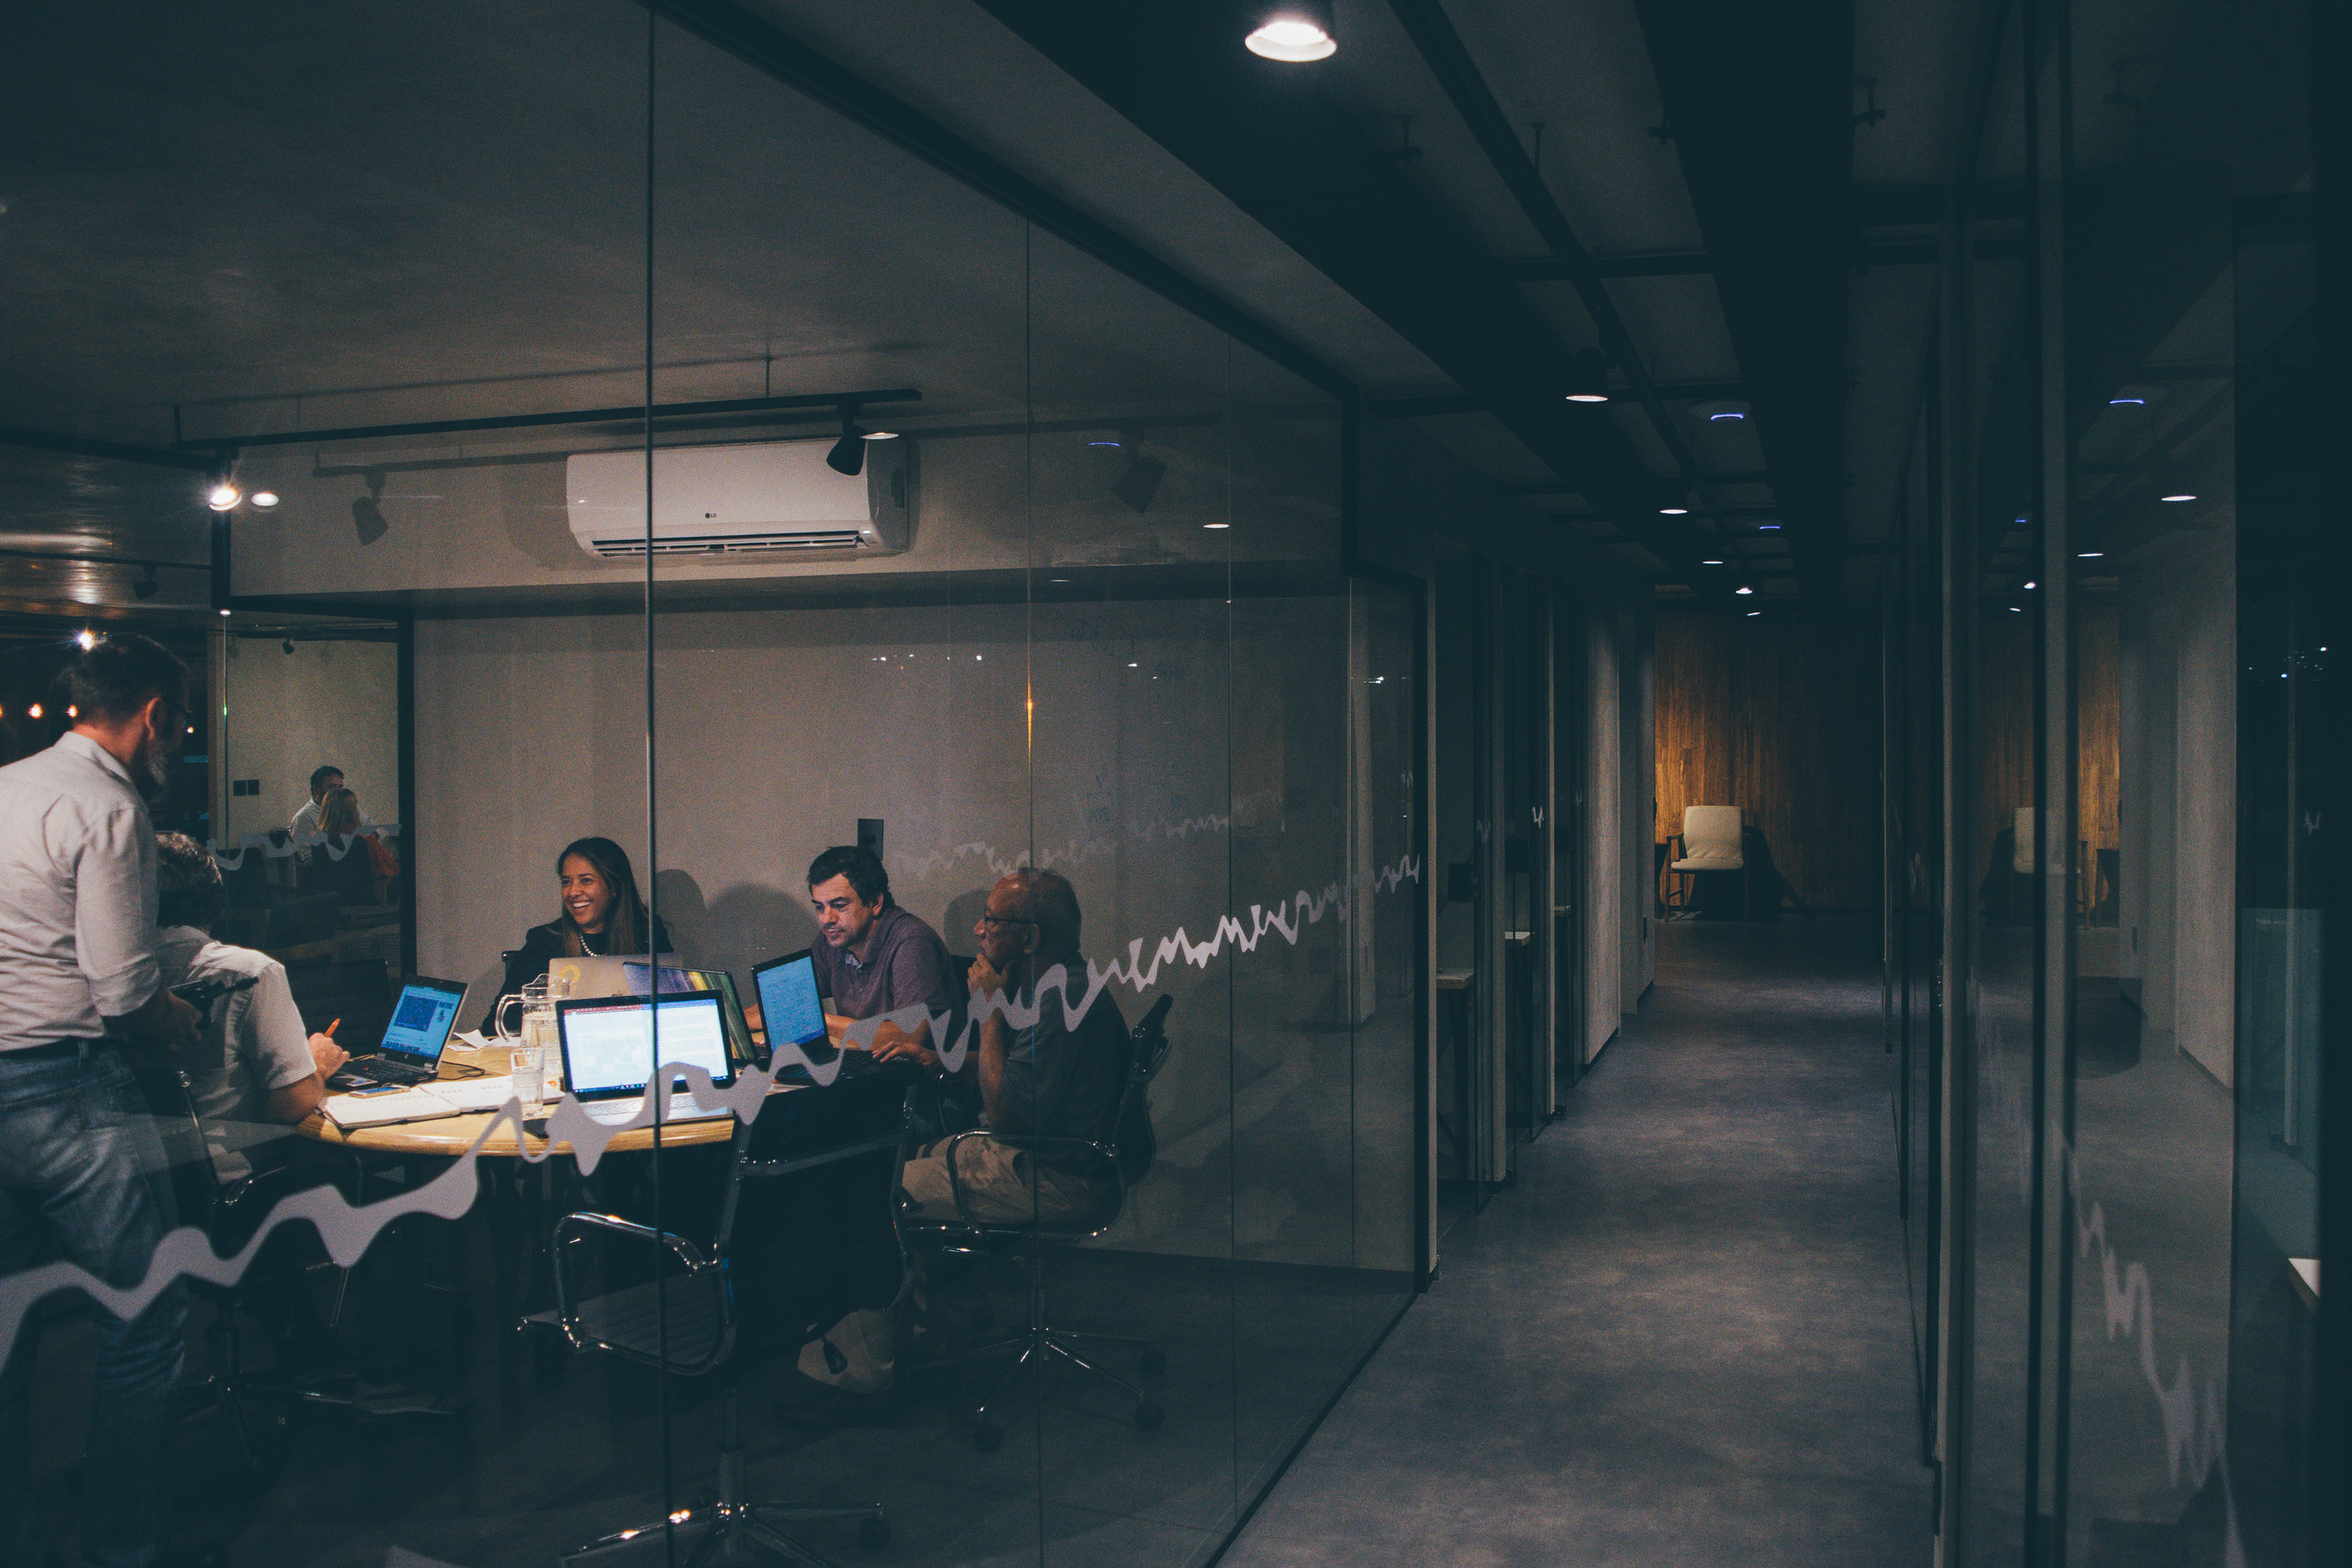 Looking to hire supply chain talent for your startup?